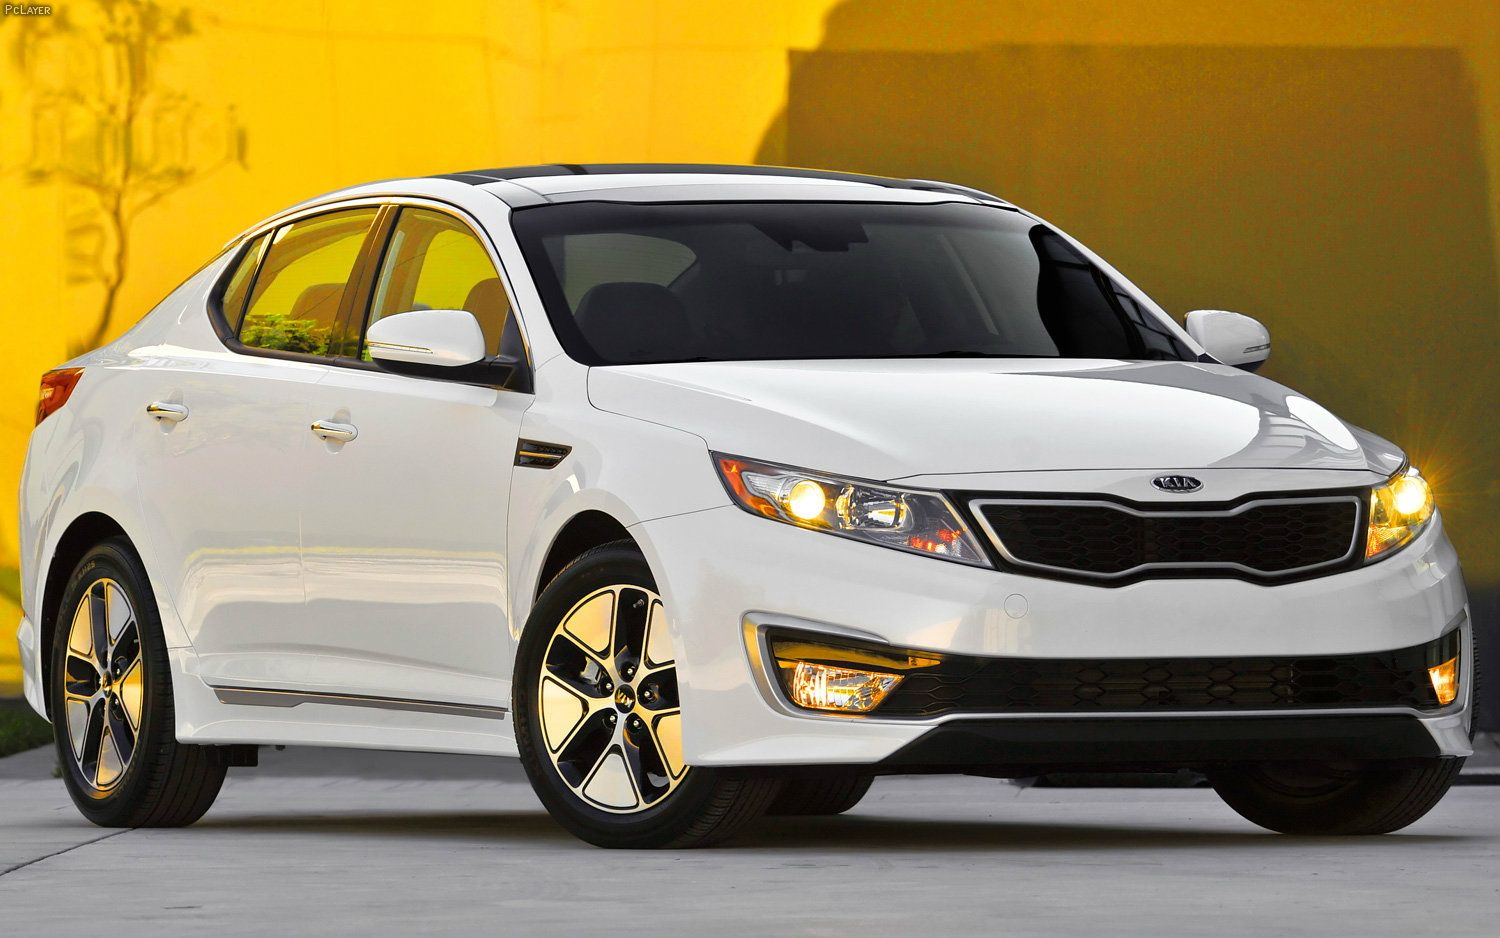 Kia Cars | Kia Optima Hybrid Car 2013 2014 Price In Pakistan : Vehicles